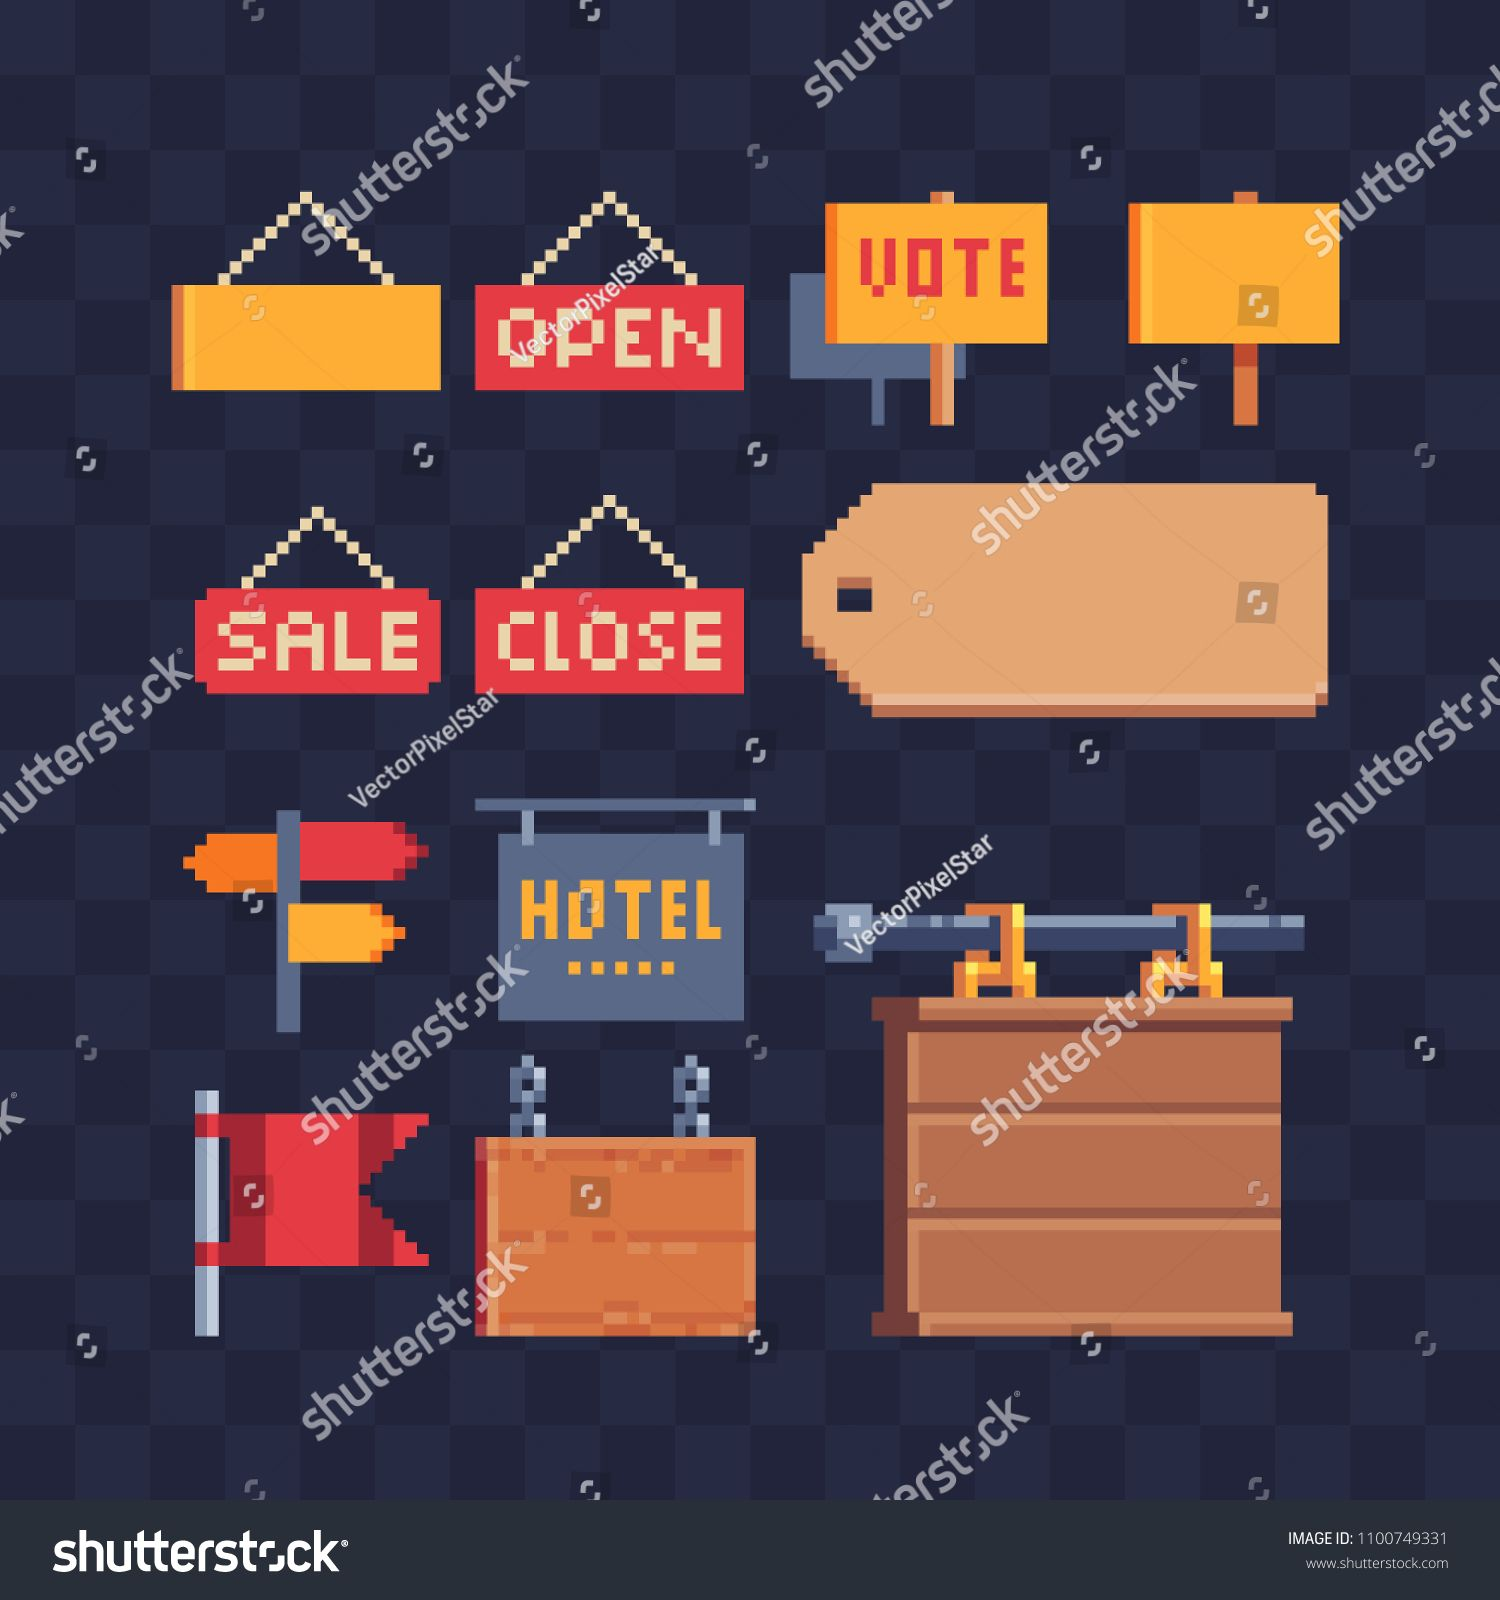 Open closed door sign retail store, sale tags, pointer